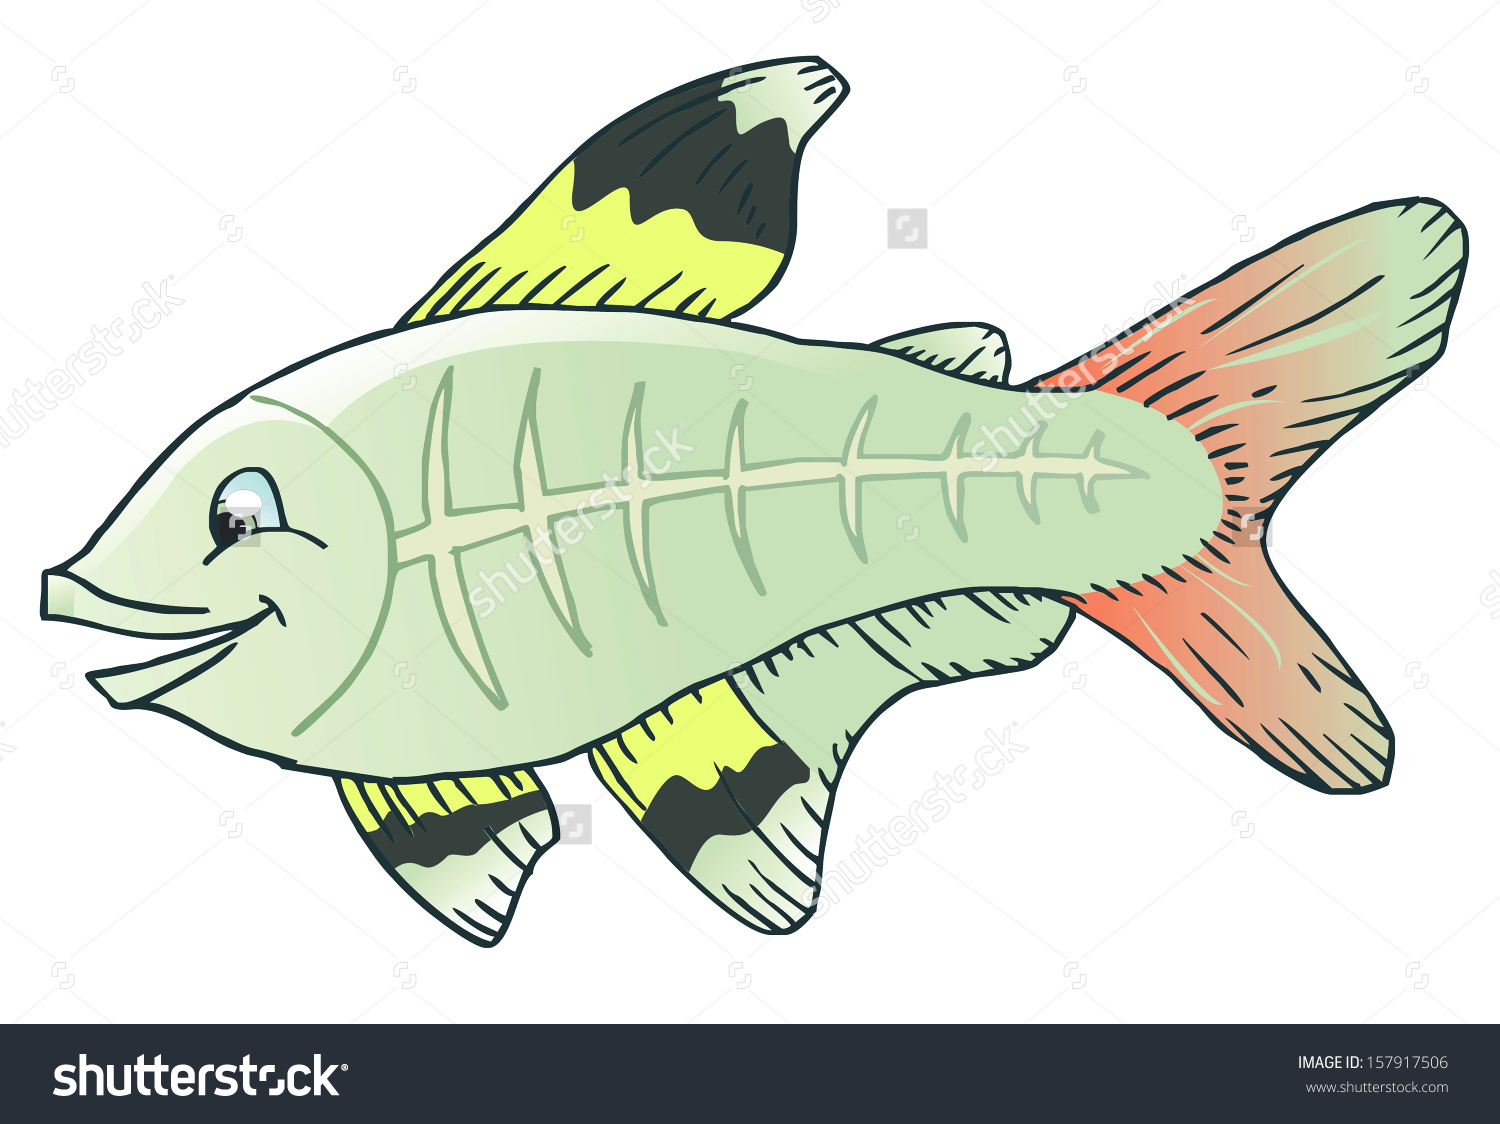 X-ray tetra cartoon fish. Save to a lightbox